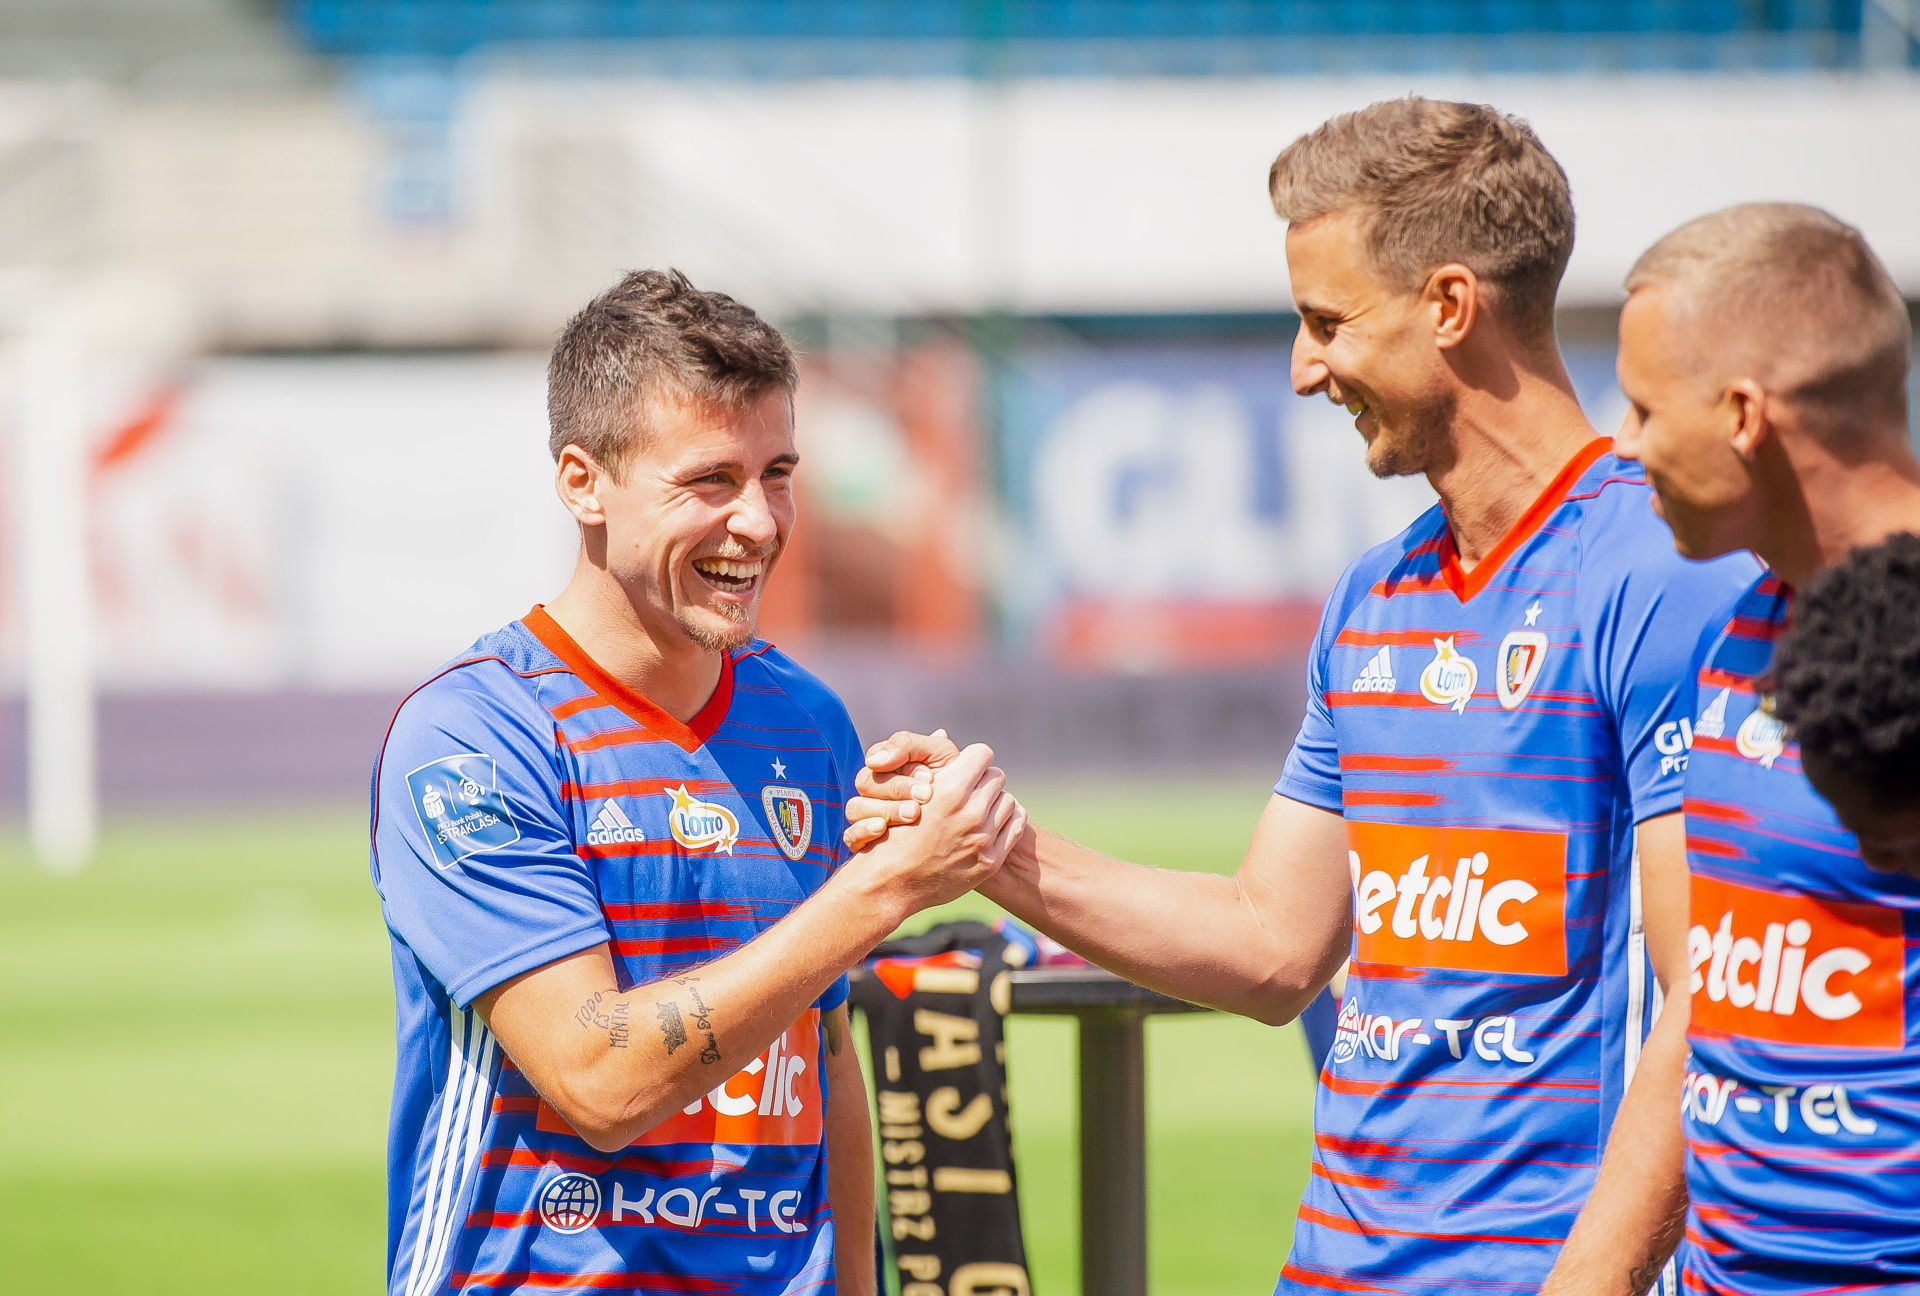 Gliwicei 06.07.2019 Ekstraklasa. Piast Gliwice. Prezentacja druzyny. n/z. Dani Aquino . Fot. Irek Dorozanski / NEWSPIX.PL --- Newspix.pl *** Local Caption *** www.newspix.pl mail us: info@newspix.pl call us: 0048 022 23 22 222 --- Polish Picture Agency by Ringier Axel Springer Poland